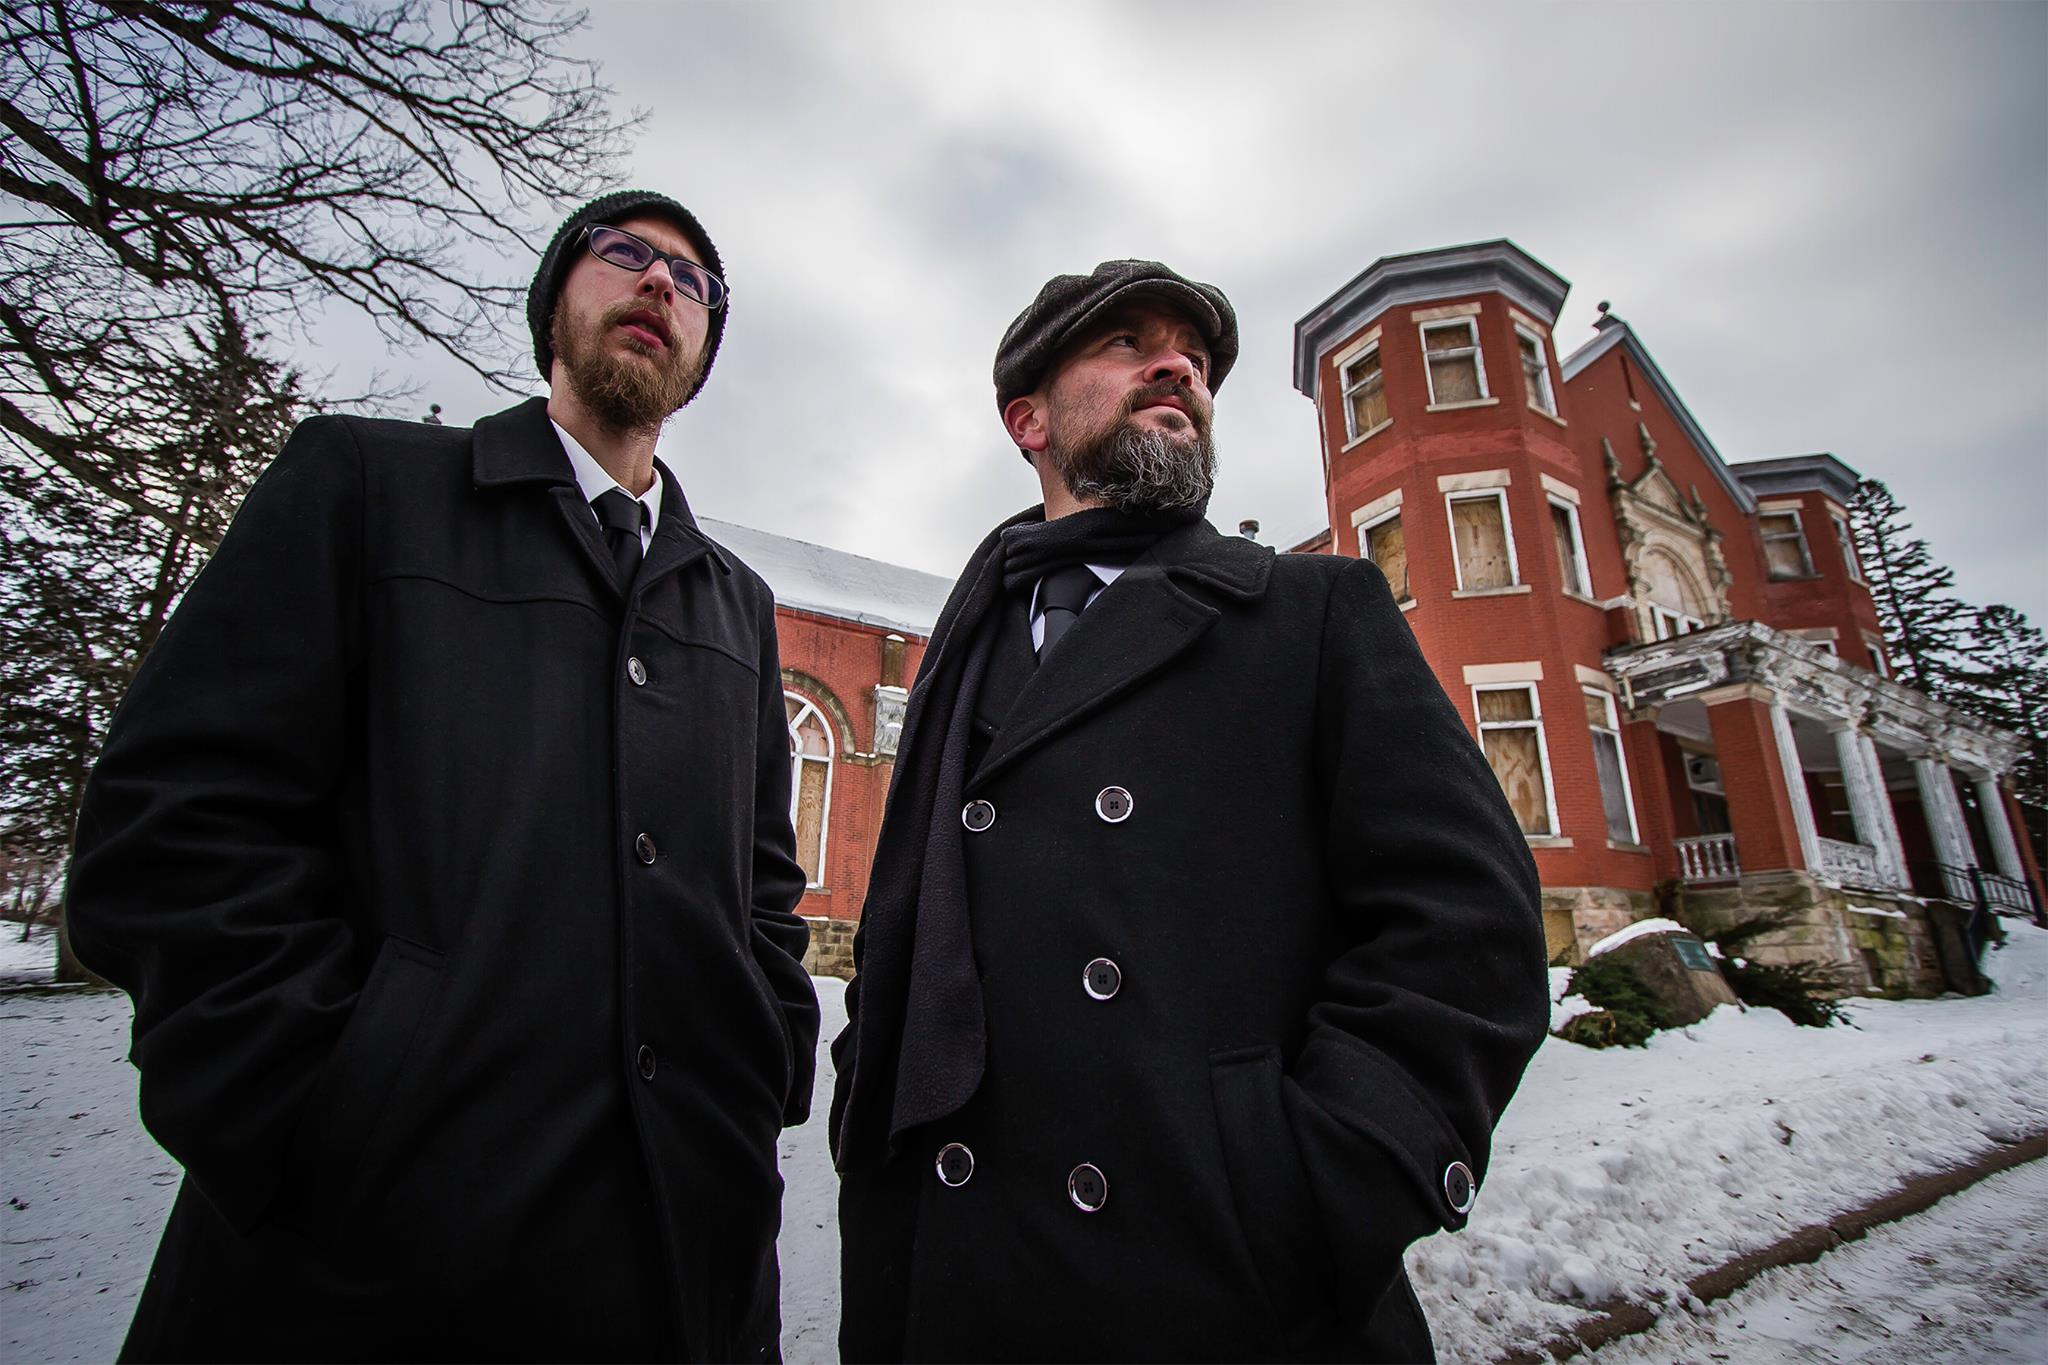 Midwest Soul Xchange Translate Flint Water Crisis Through Rock Opera 'Weakened at the Asylum' (ALBUM REVIEW)